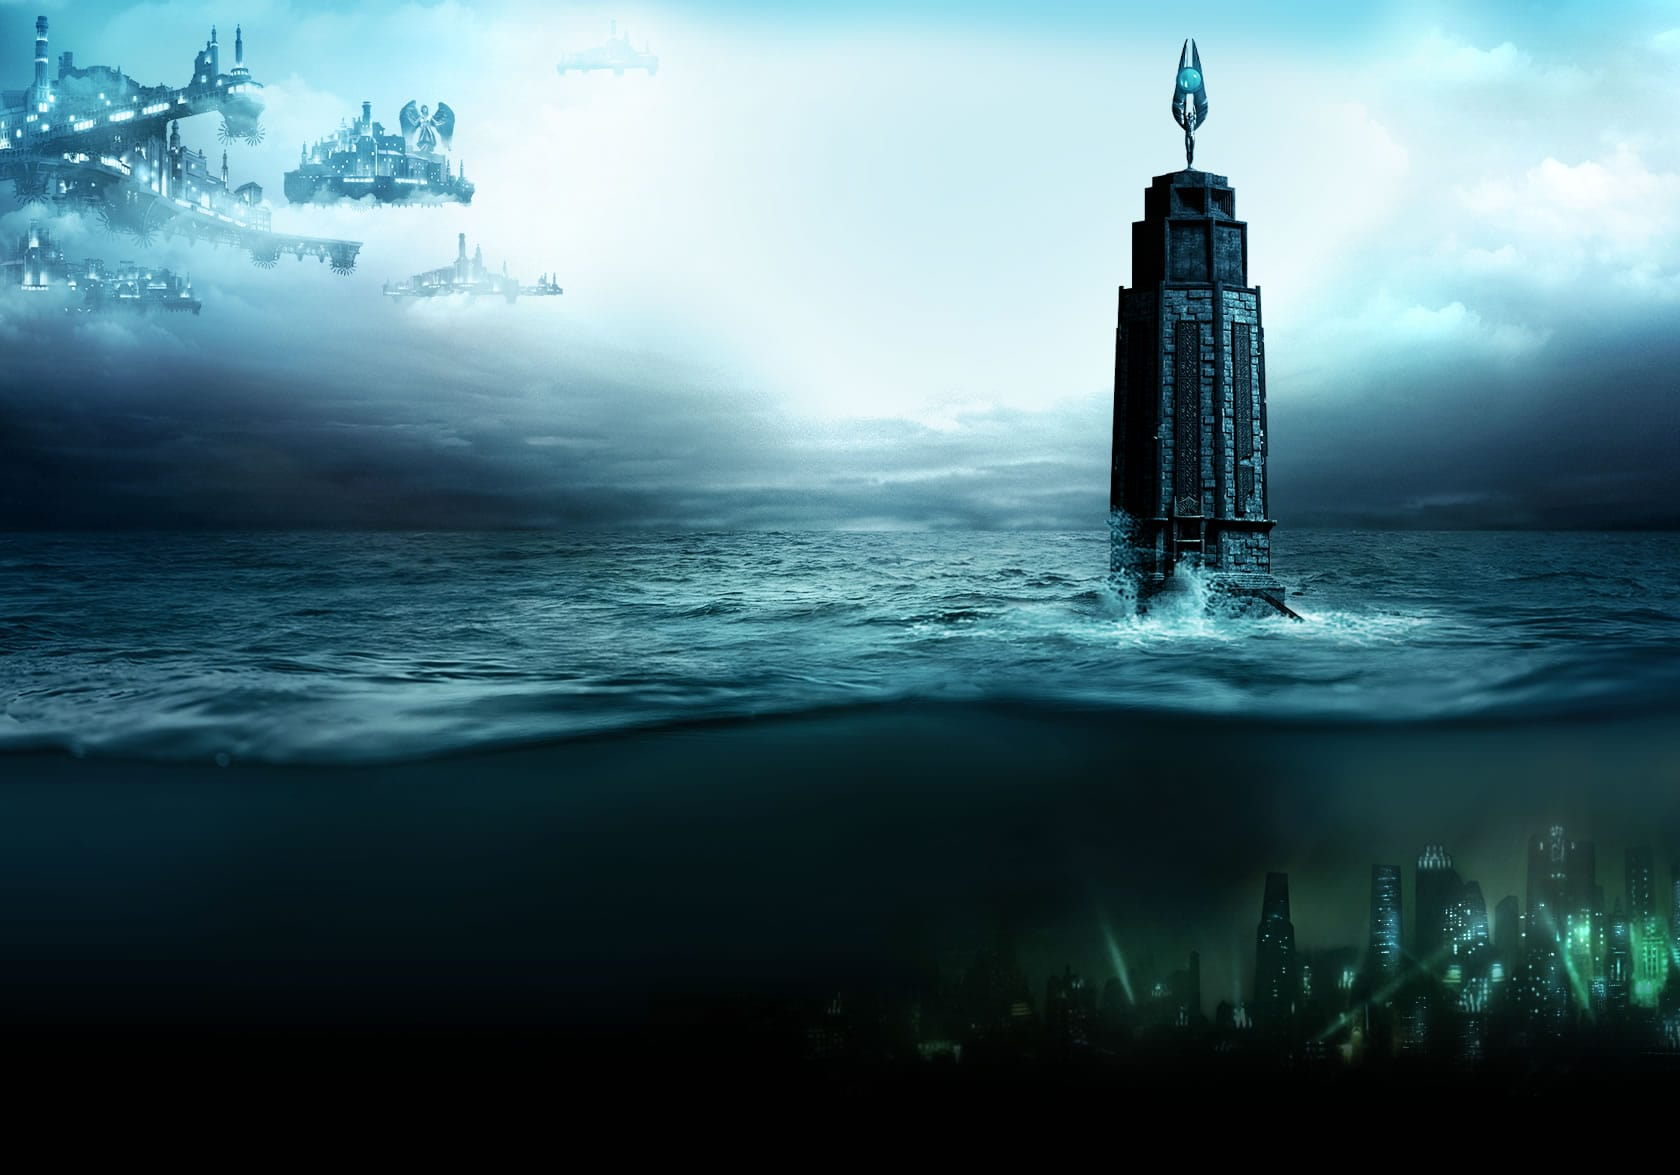 Bioshock  Desktop Wallpaper  PixelsTalk BioShock Wallpapers  Wallpaper  1680x1175